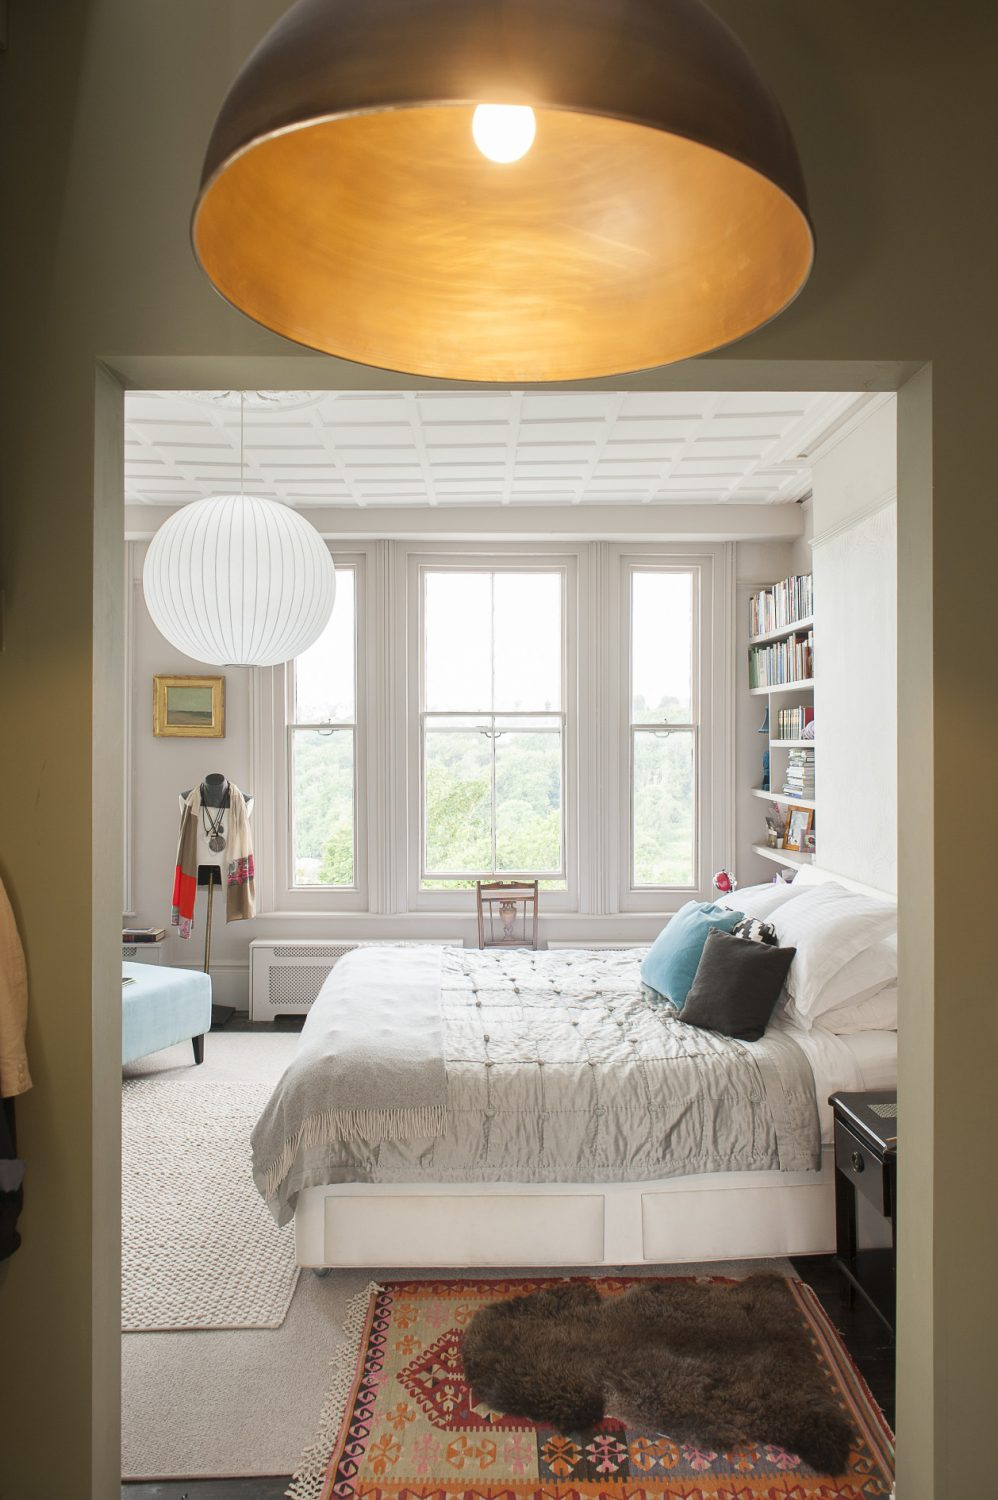 The pale grey bedroom is linked to the bathroom by an olive green dressing room. The striking copper light fitting is by Jim Lawrence. The seascape on the far wall is by Anne Packard. The white and steel pendant light is one of a number of George Nelson classic lights throughout the house